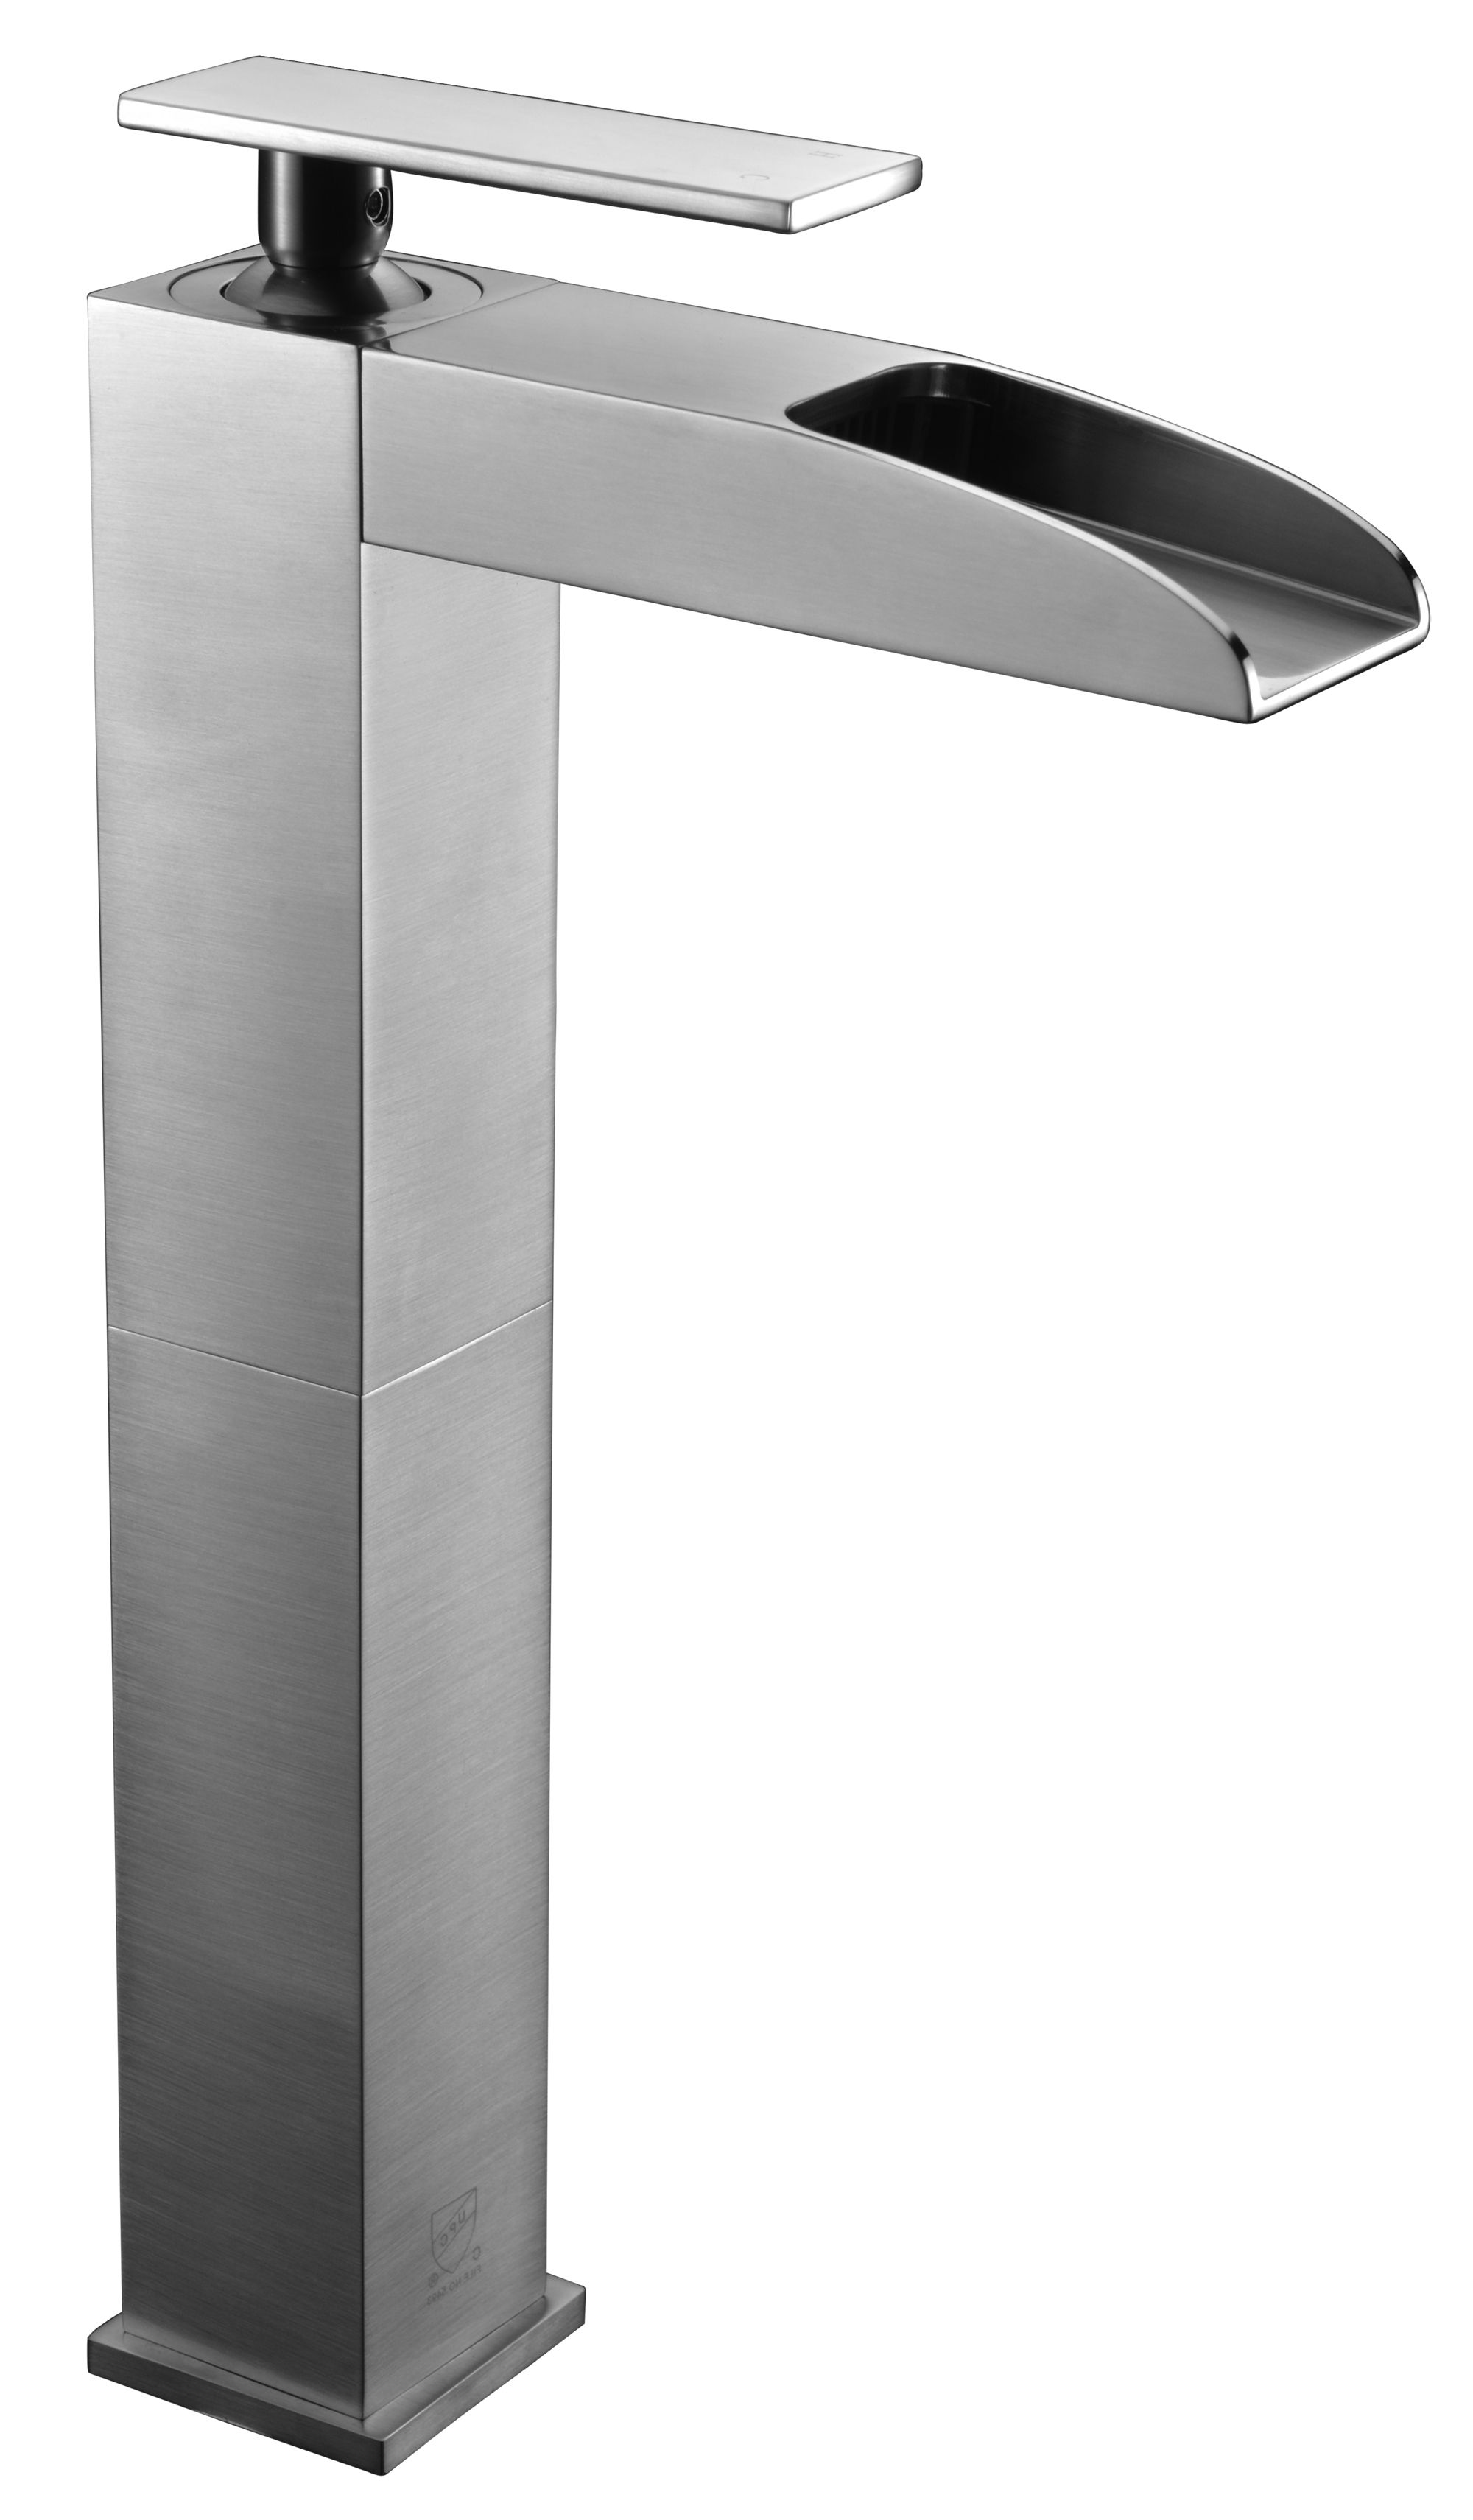 ALFI Brand AB1597 Brushed Nickel or Polished Chrome Single Hole Tall Waterfall Bathroom Faucet